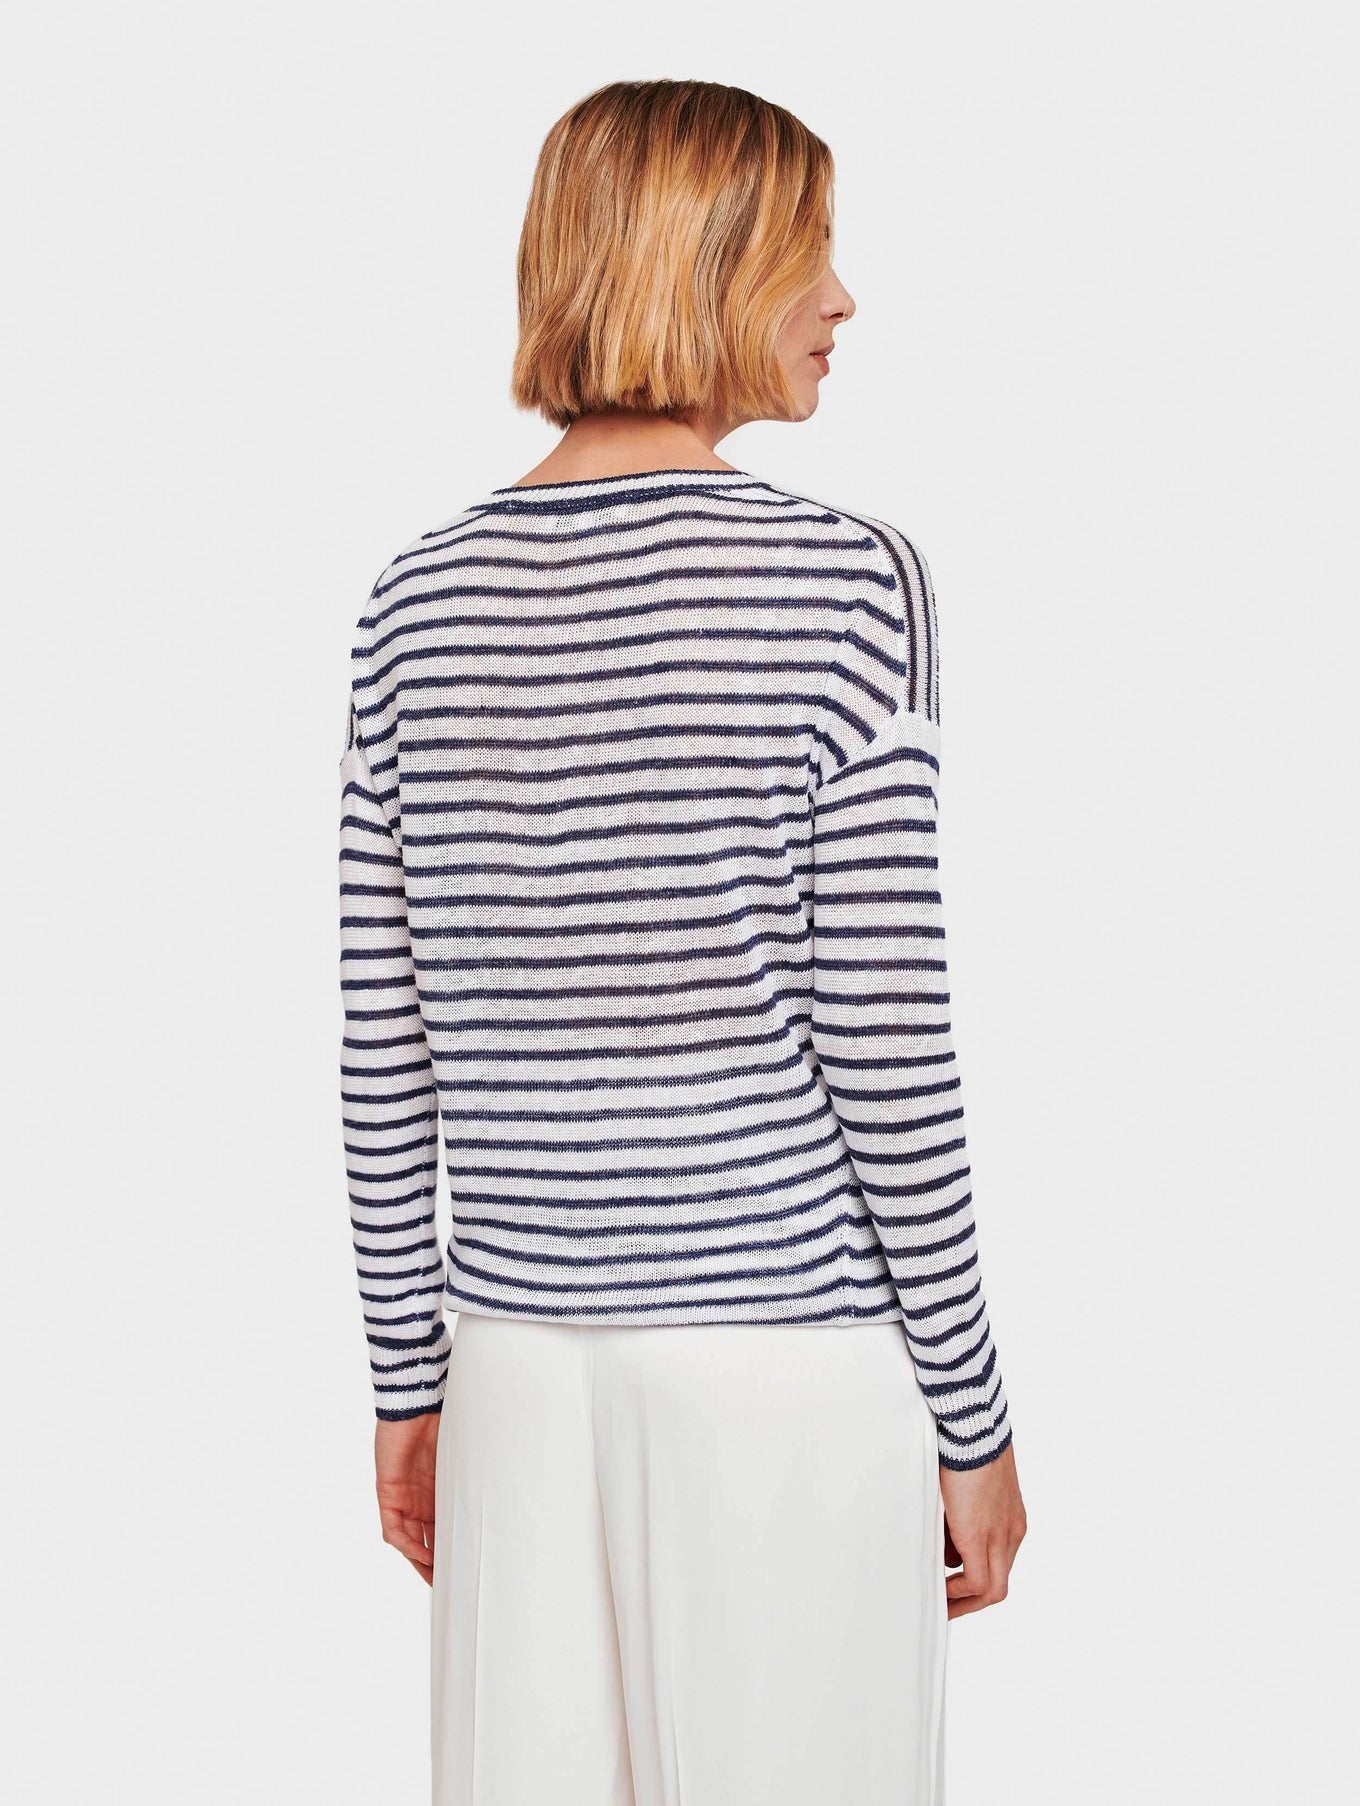 Linen Knotted Stripe Crewneck - White/Denim - Image 3